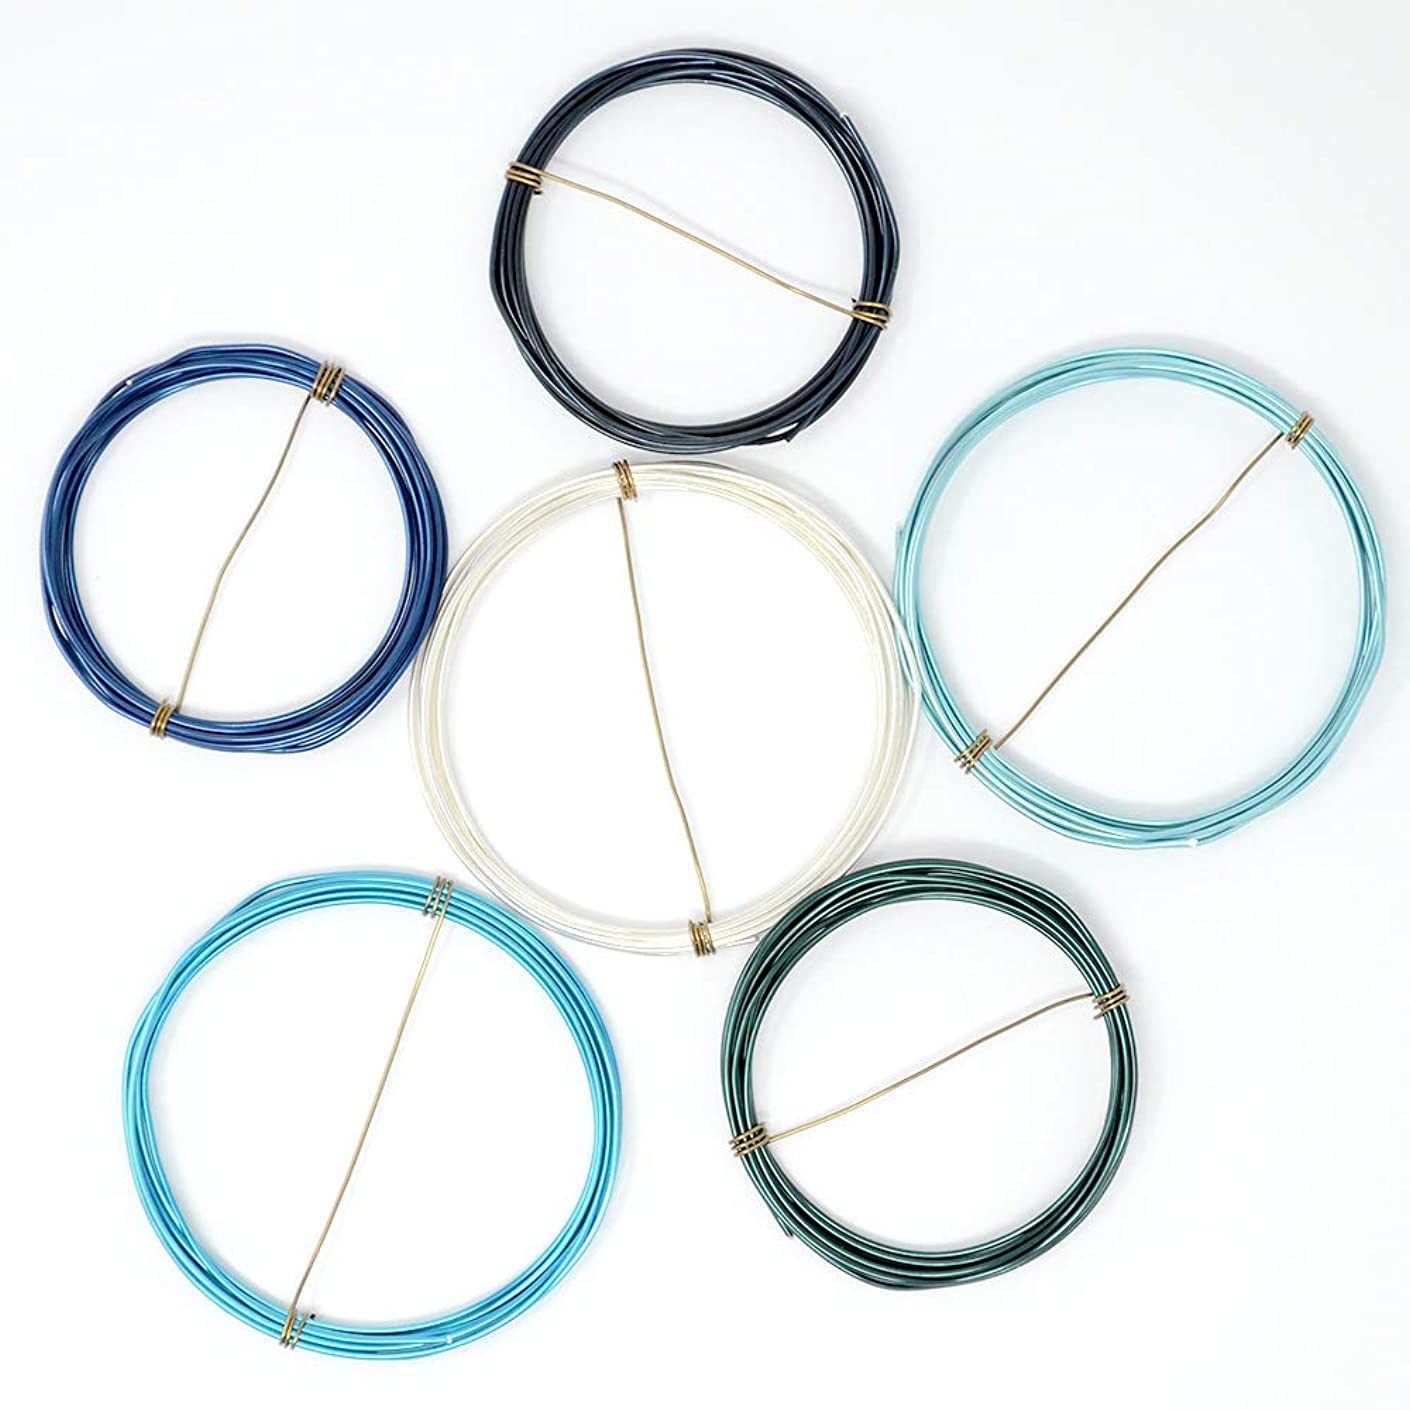 Cold and Blue - Enameled Copper Wire Spools – 18 Gauge - Baby Blue, Blue, Blue Steel, Pacific Blue, Peacock Blue, Silver - 5 feet of Each Color (30 Total feet)